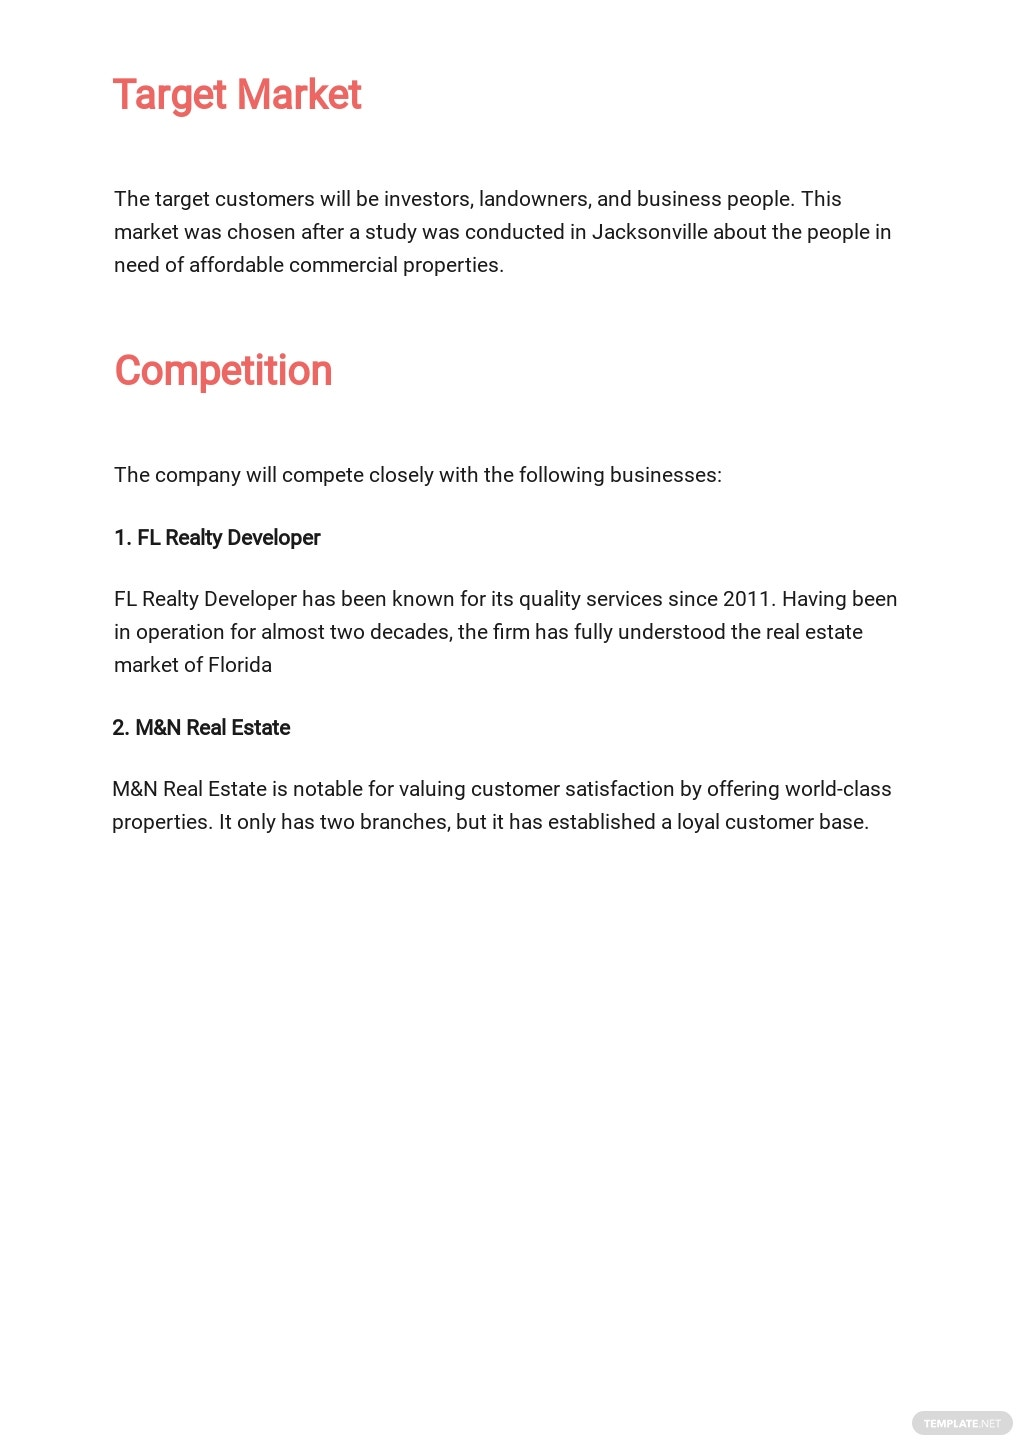 Free Commercial Real Estate Business Plan Template 2.jpe